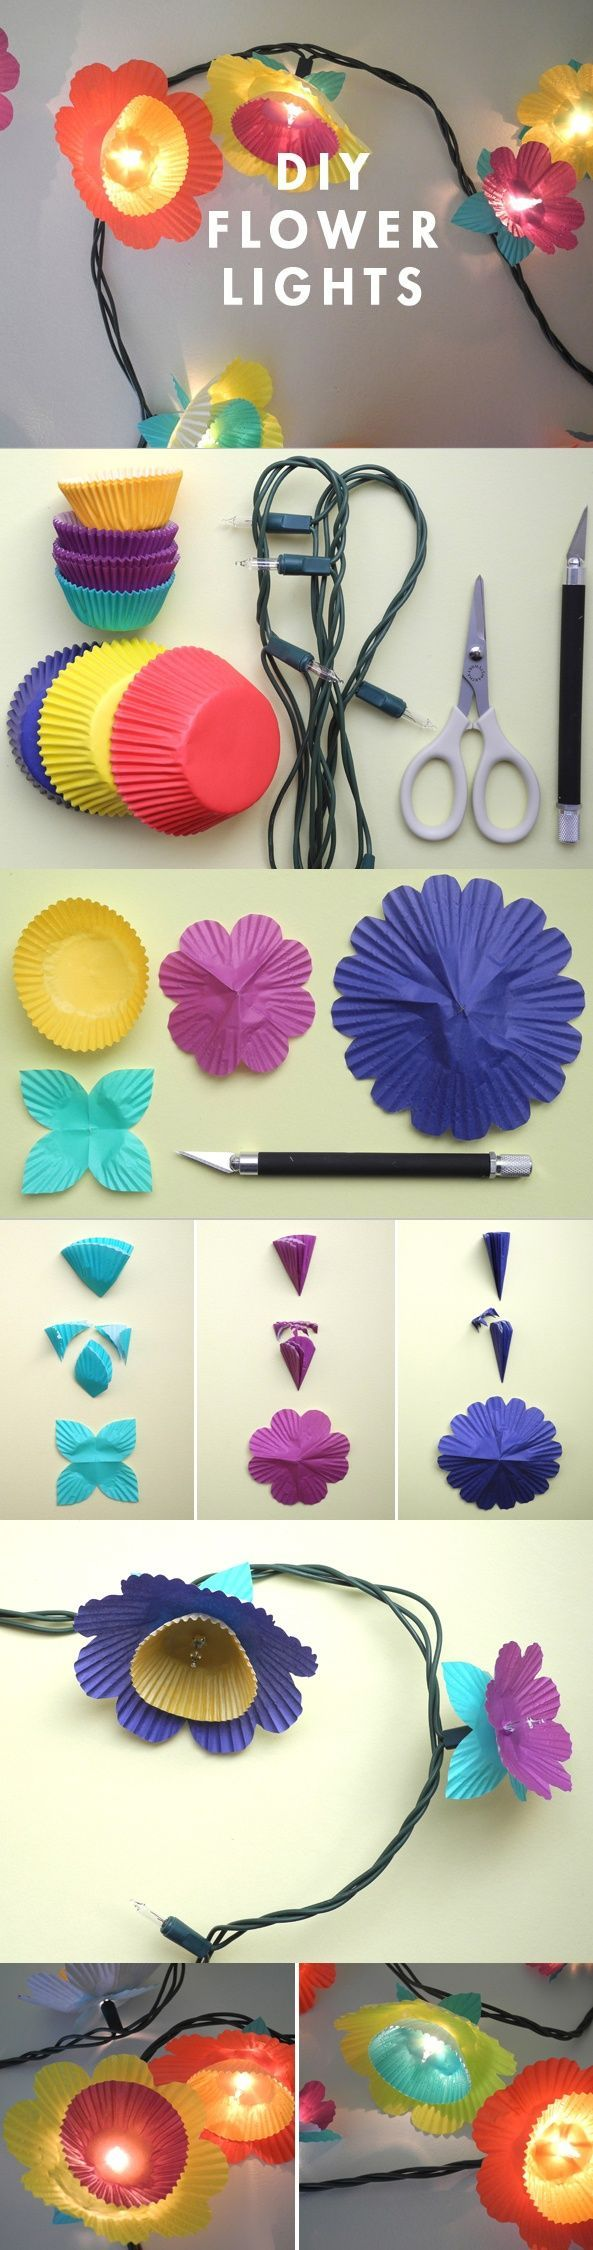 DIY Flower Lights From Cupcake Liners